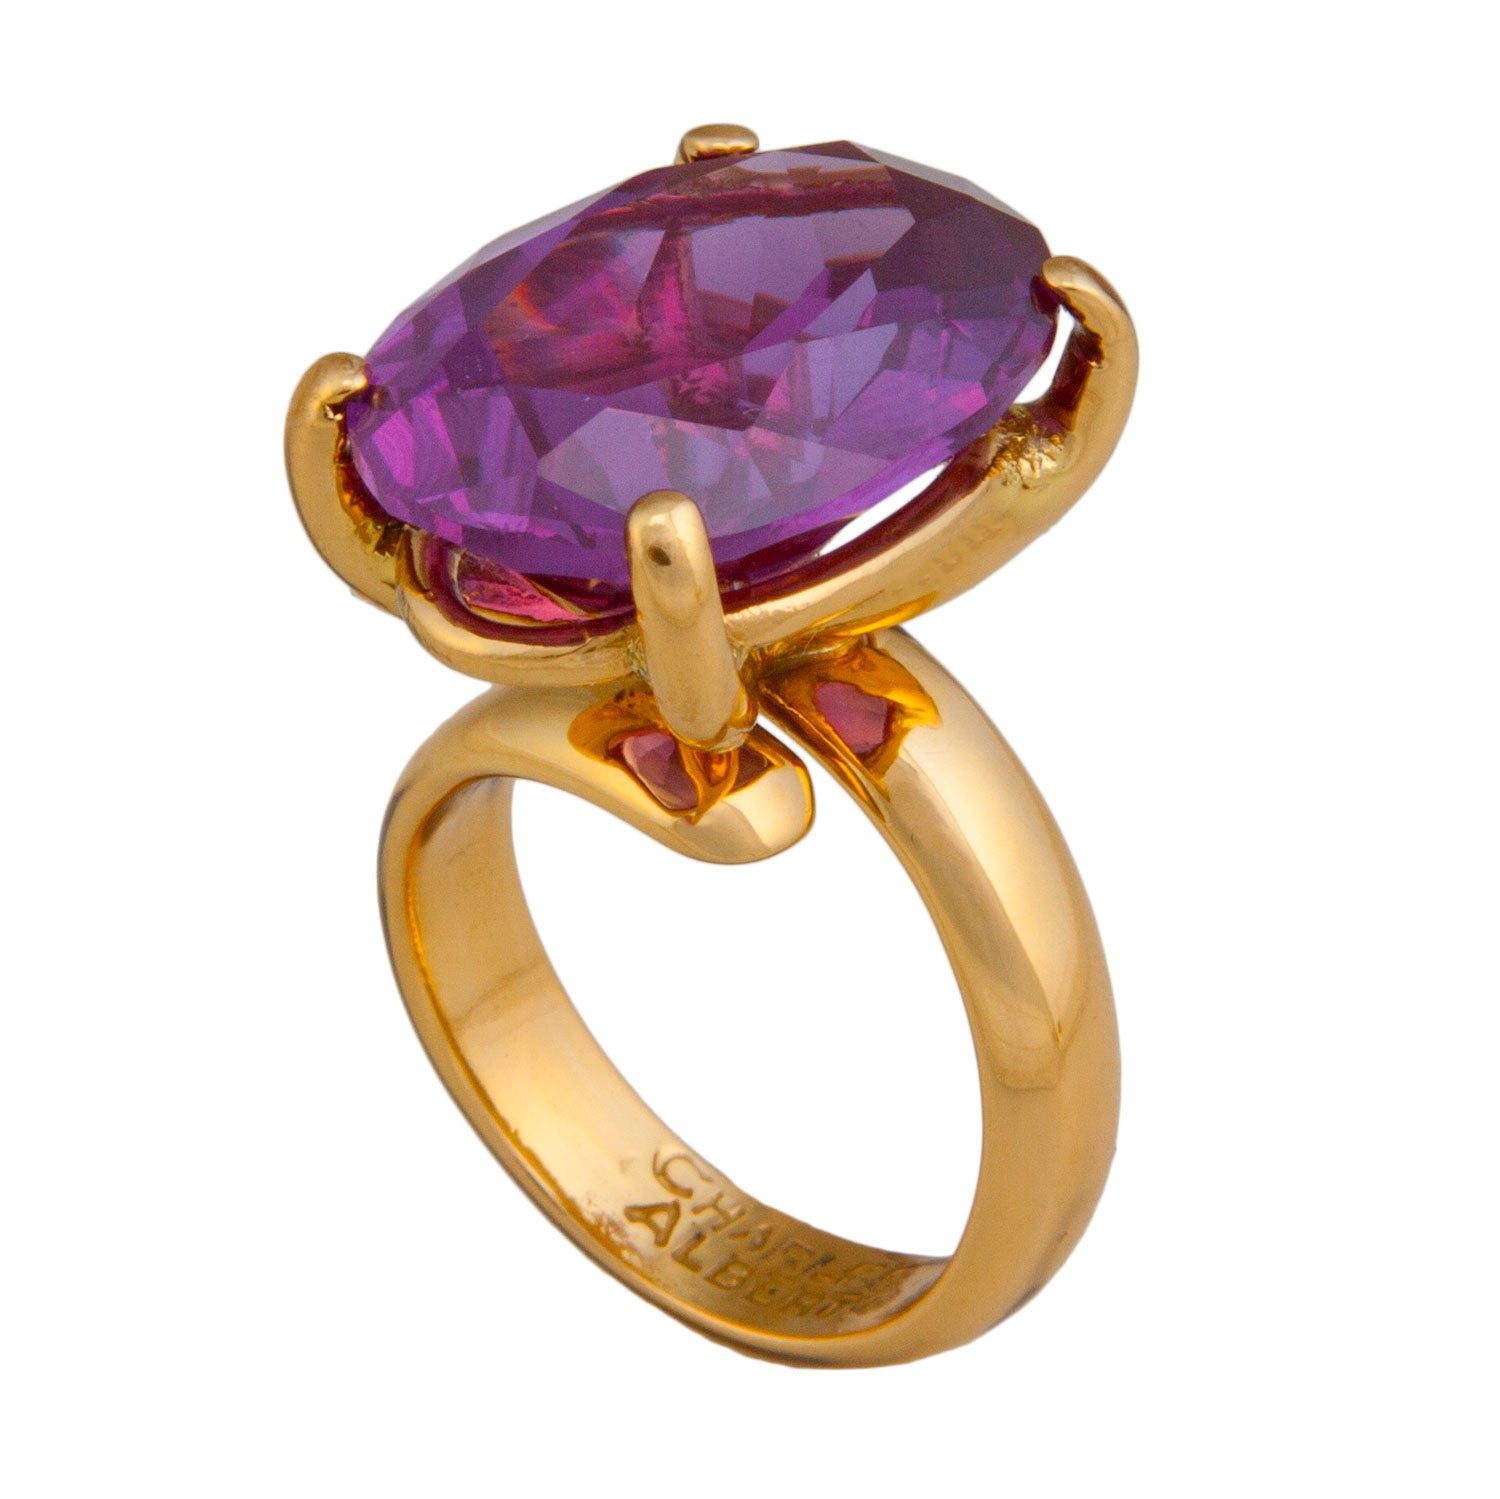 Alchemia Amethyst Prong Set Adjustable Ring